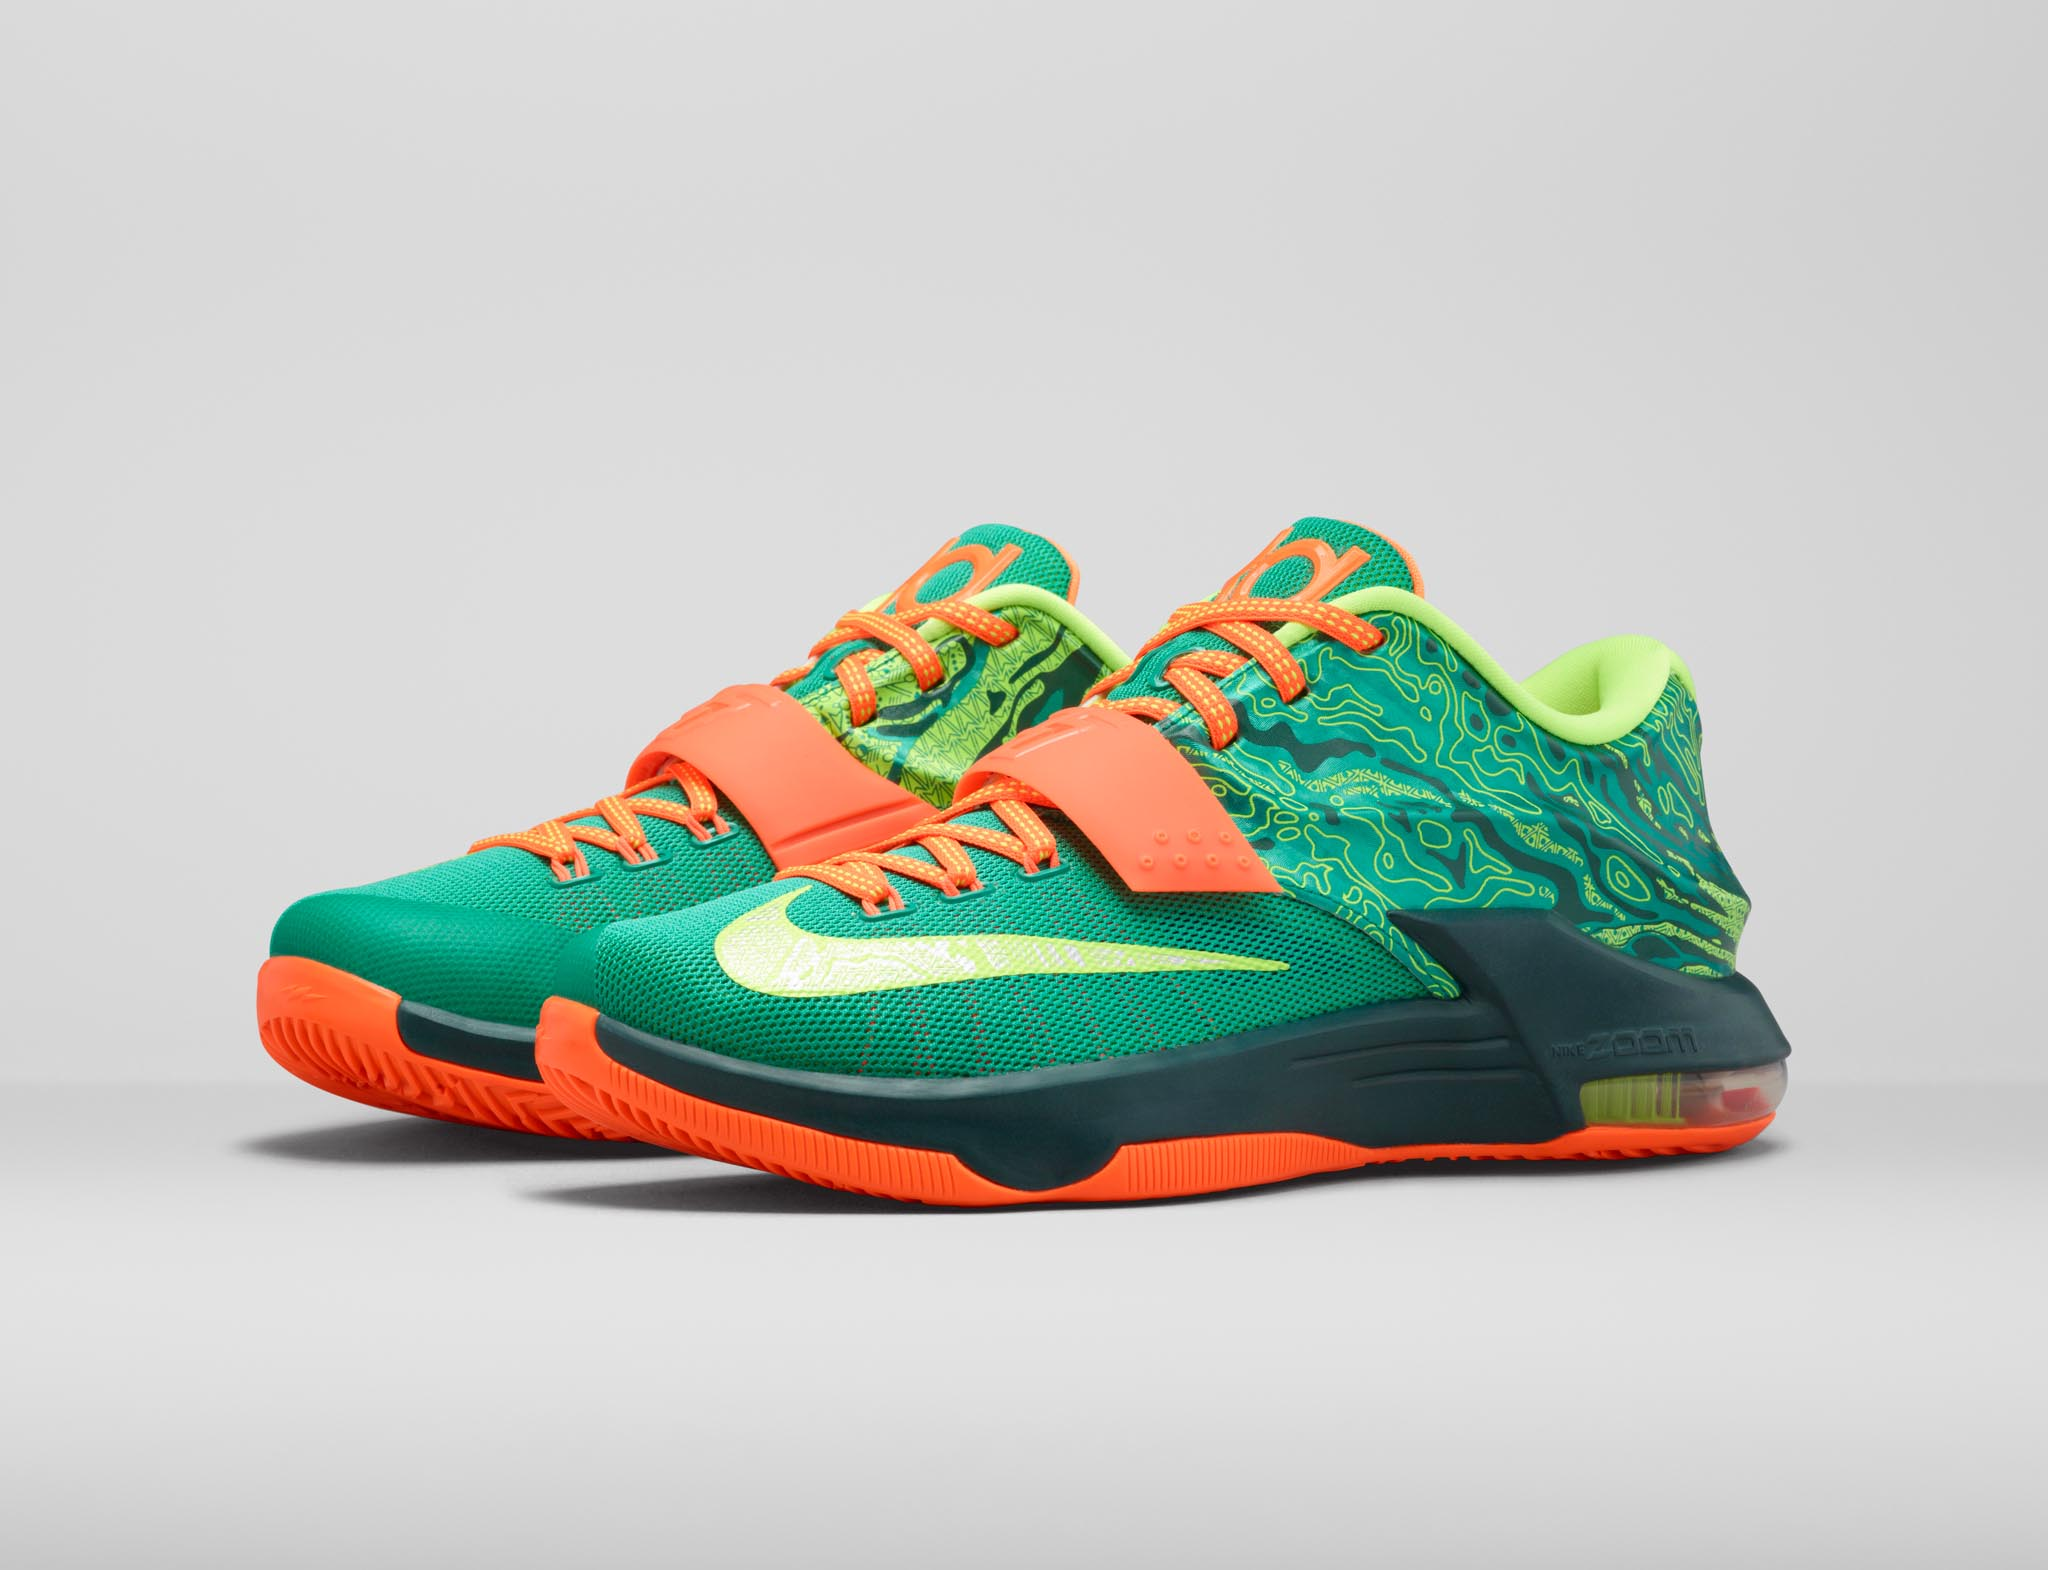 fc9cb40e927 ... czech the nike kd7 weatherman is one of those shoes i that made me want  to